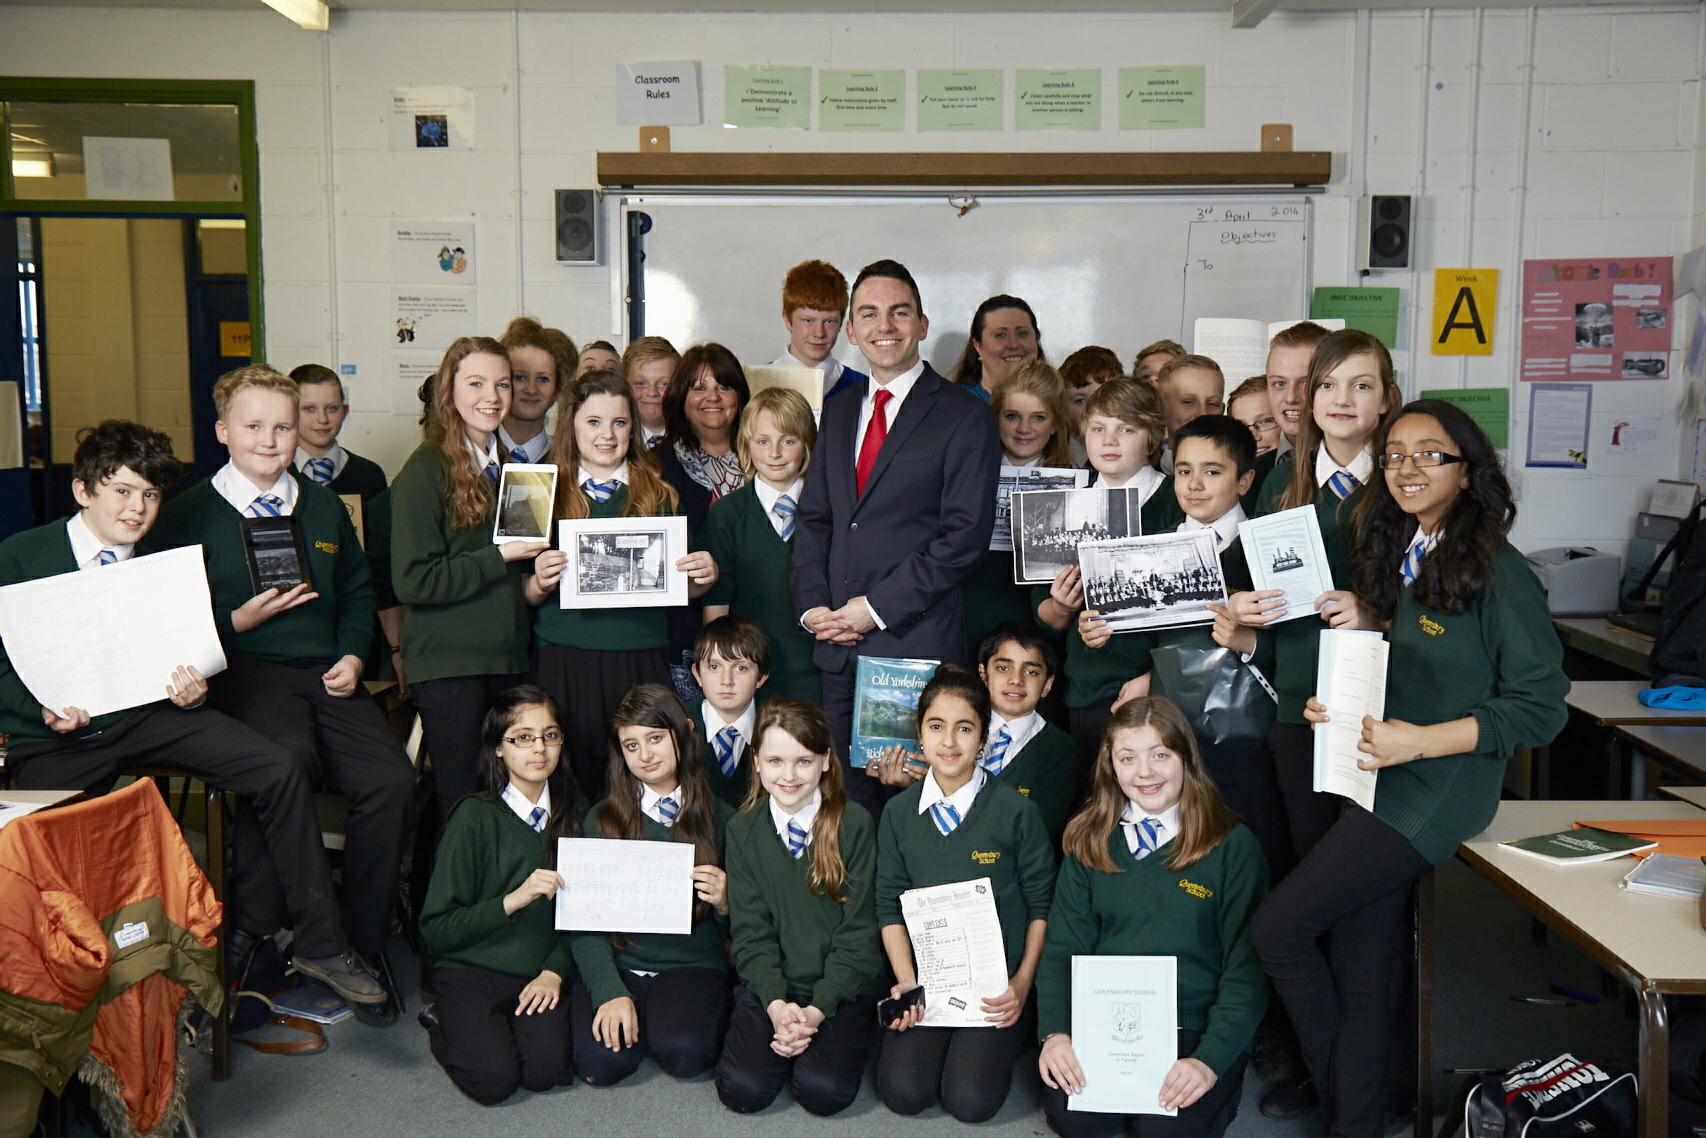 Queensbury School pupils to name homes site